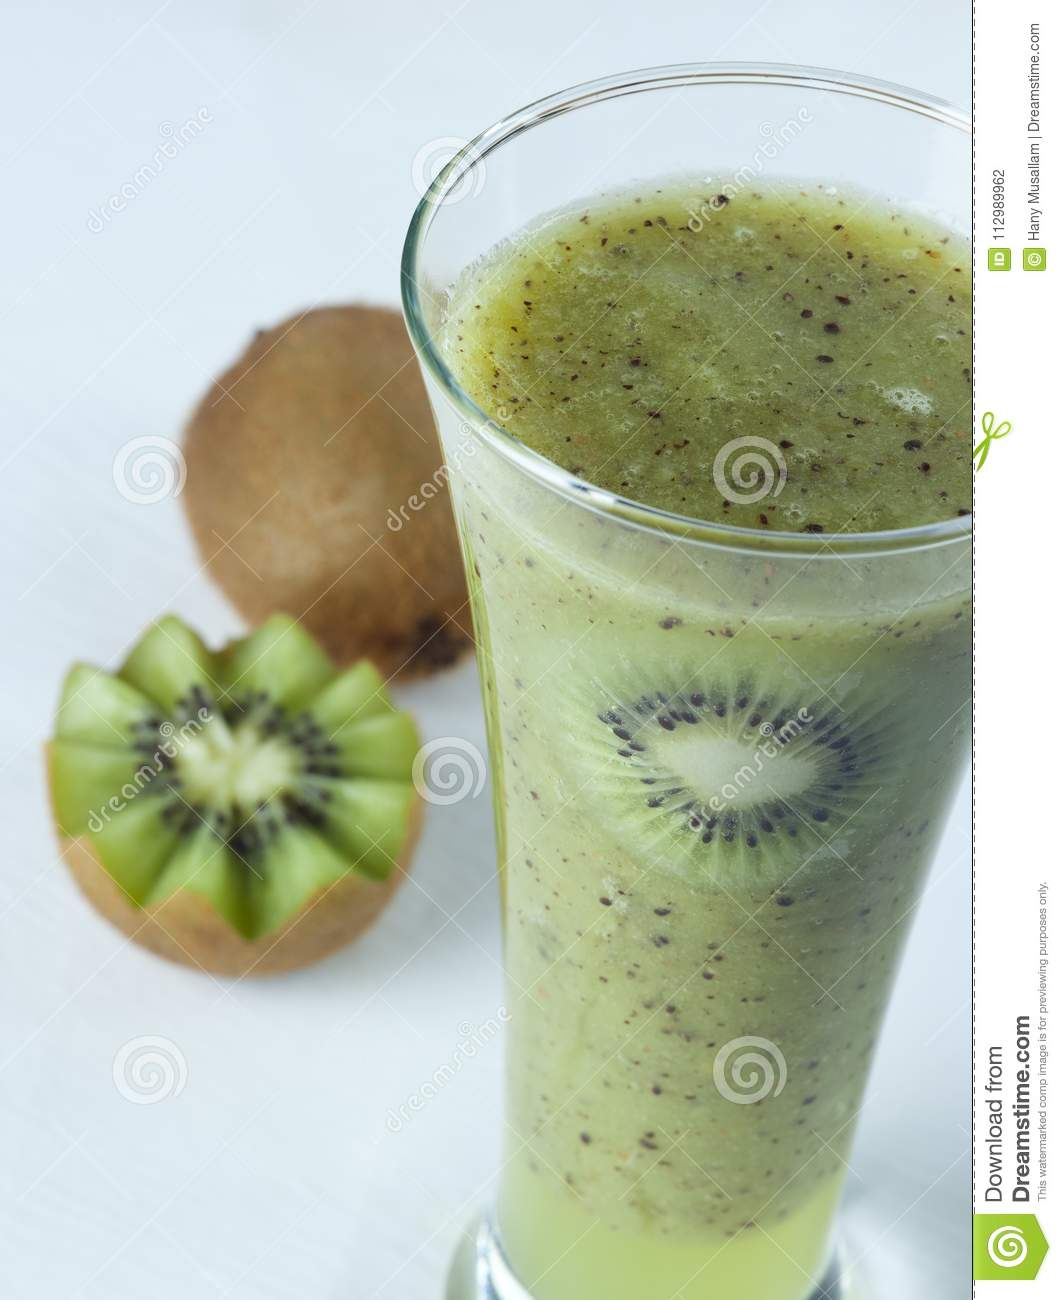 A glass of kiwi Juice with slices and fruits